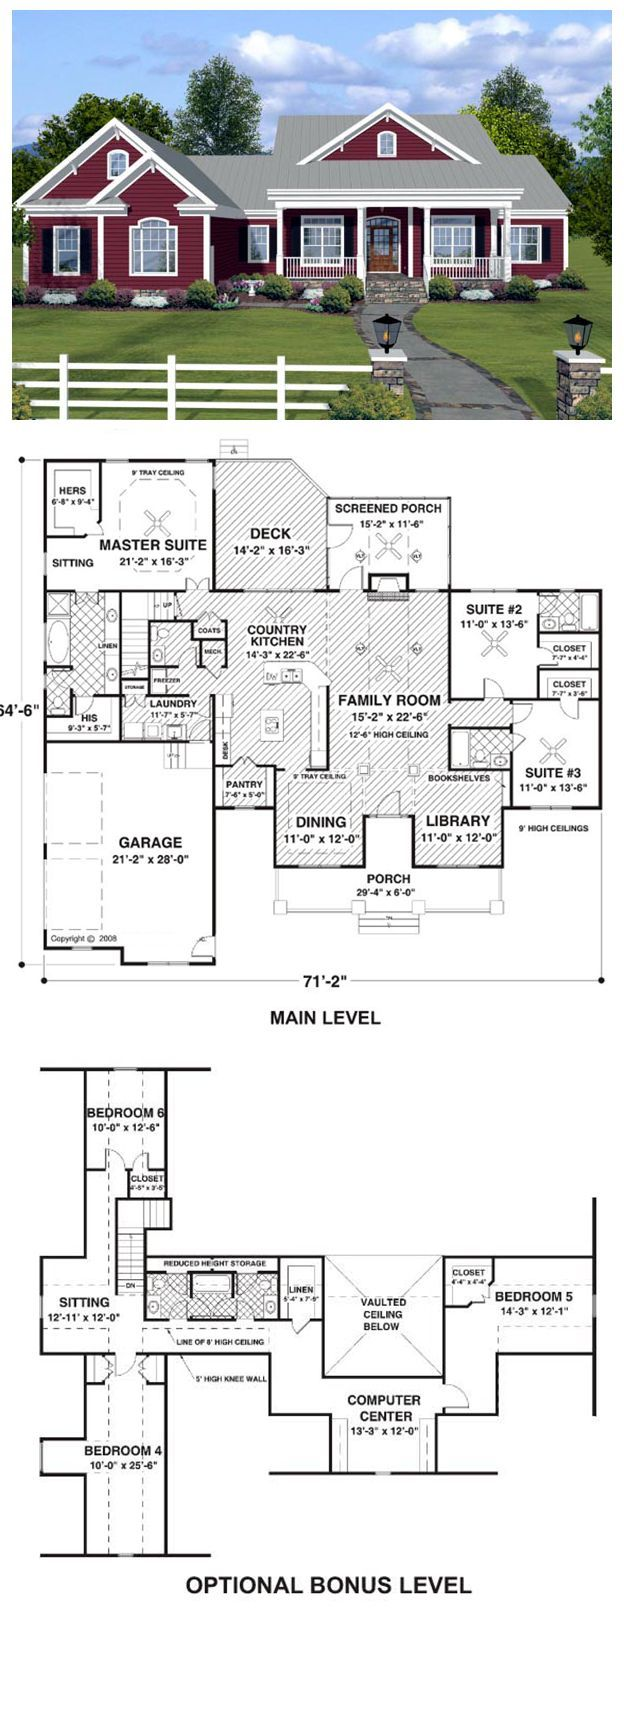 House Plan 74834 | Total living area: 2294 sq ft, 3 bedrooms 3.5 bathrooms. Welcome home to this delightful country ranch offering both beauty and an array of superb features.